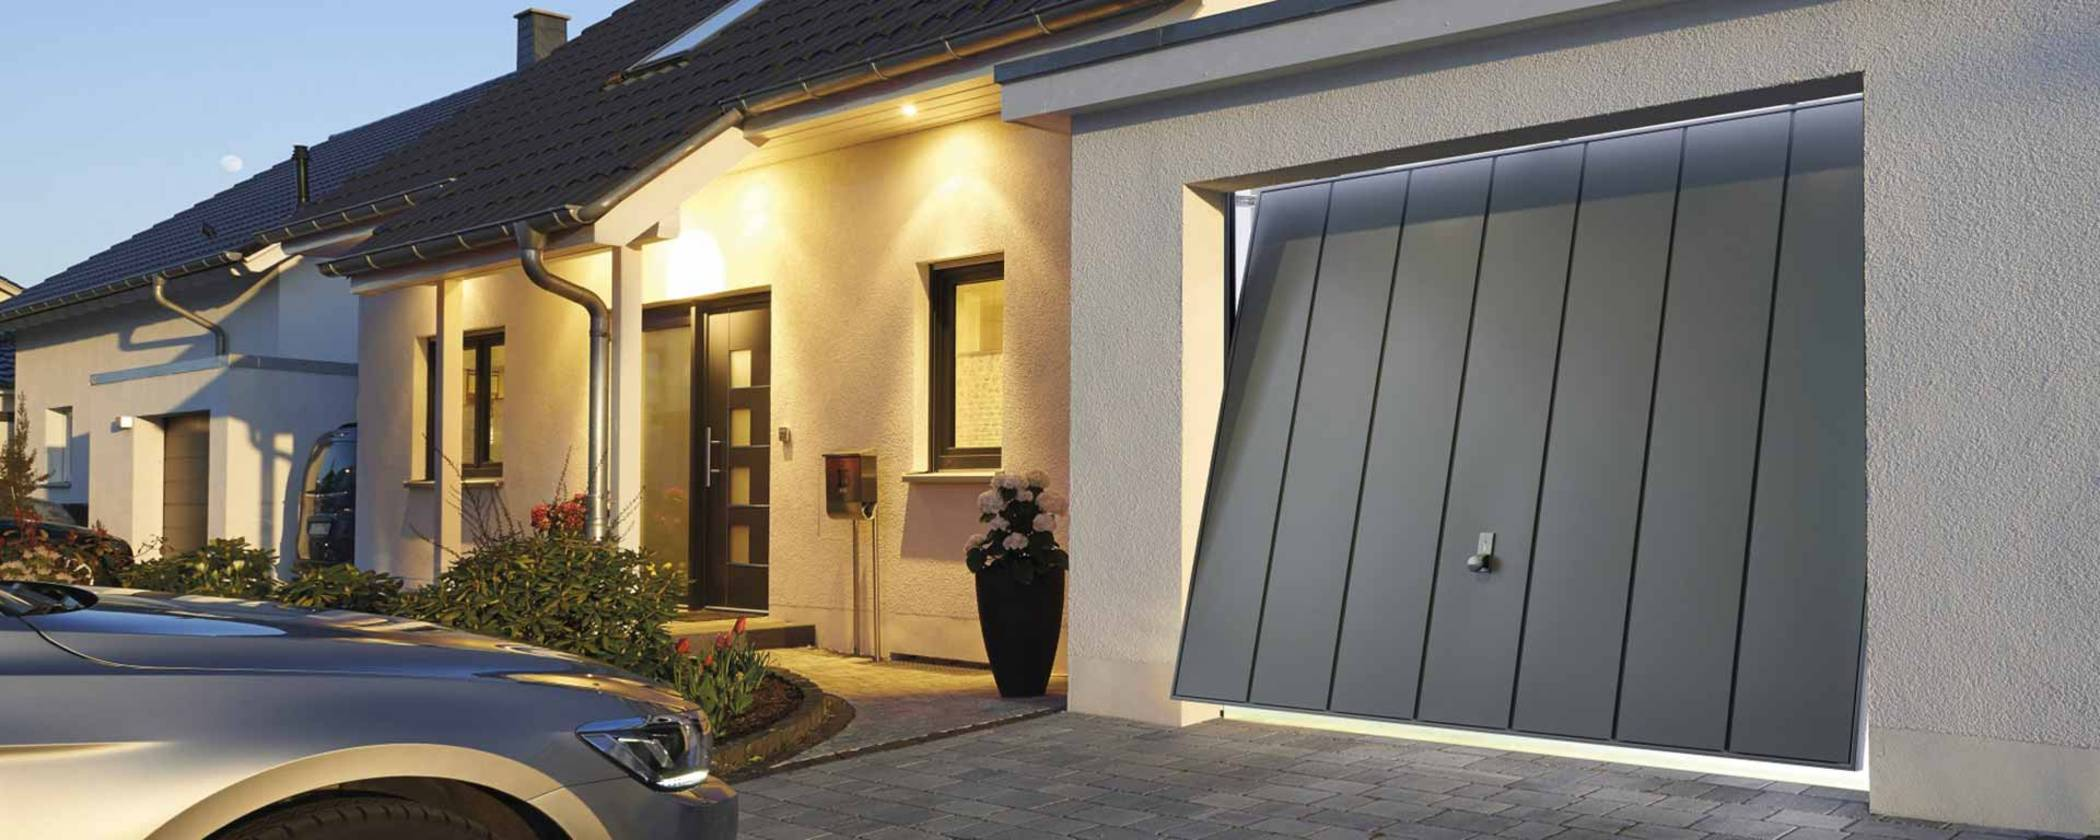 Up and over garage door security locks: What you need to know